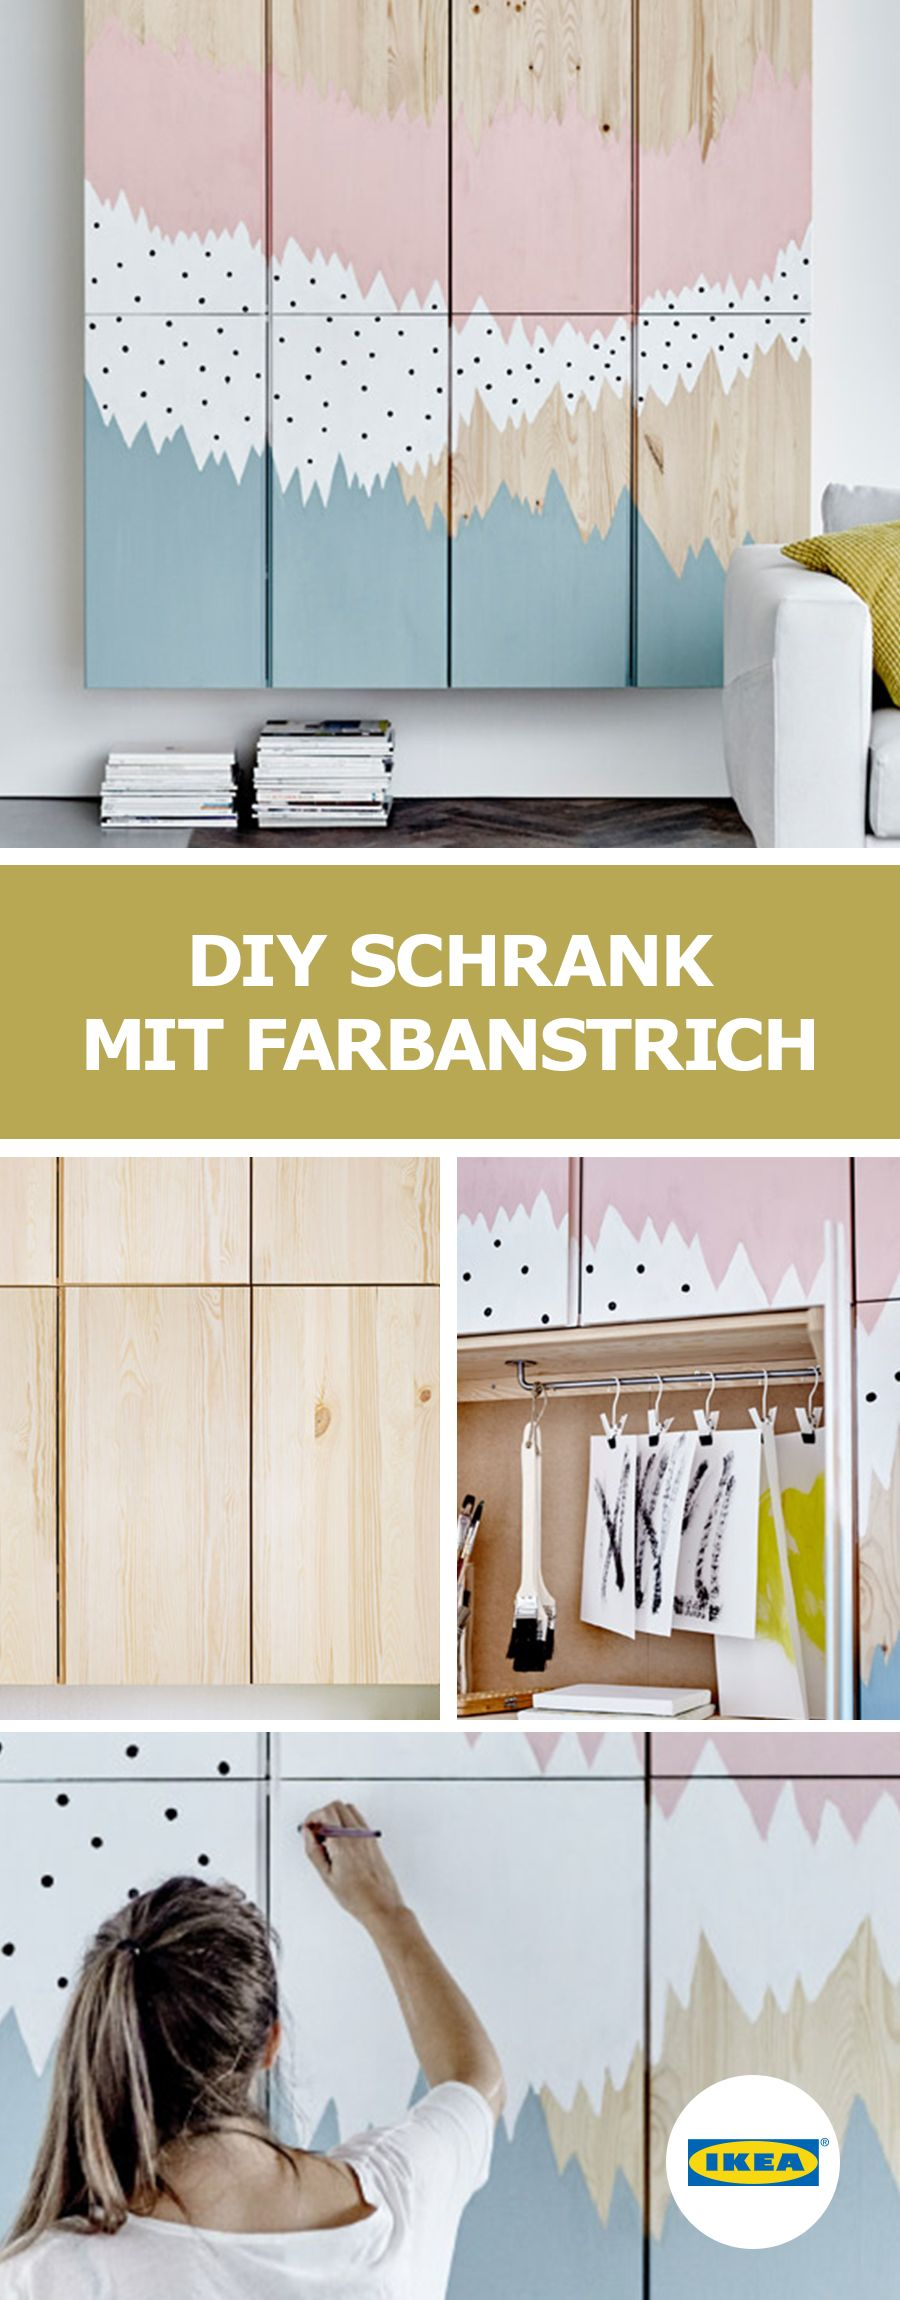 ikea deutschland diy schrank mit farbanstrich diy ideas pinterest ikea hack diys and. Black Bedroom Furniture Sets. Home Design Ideas